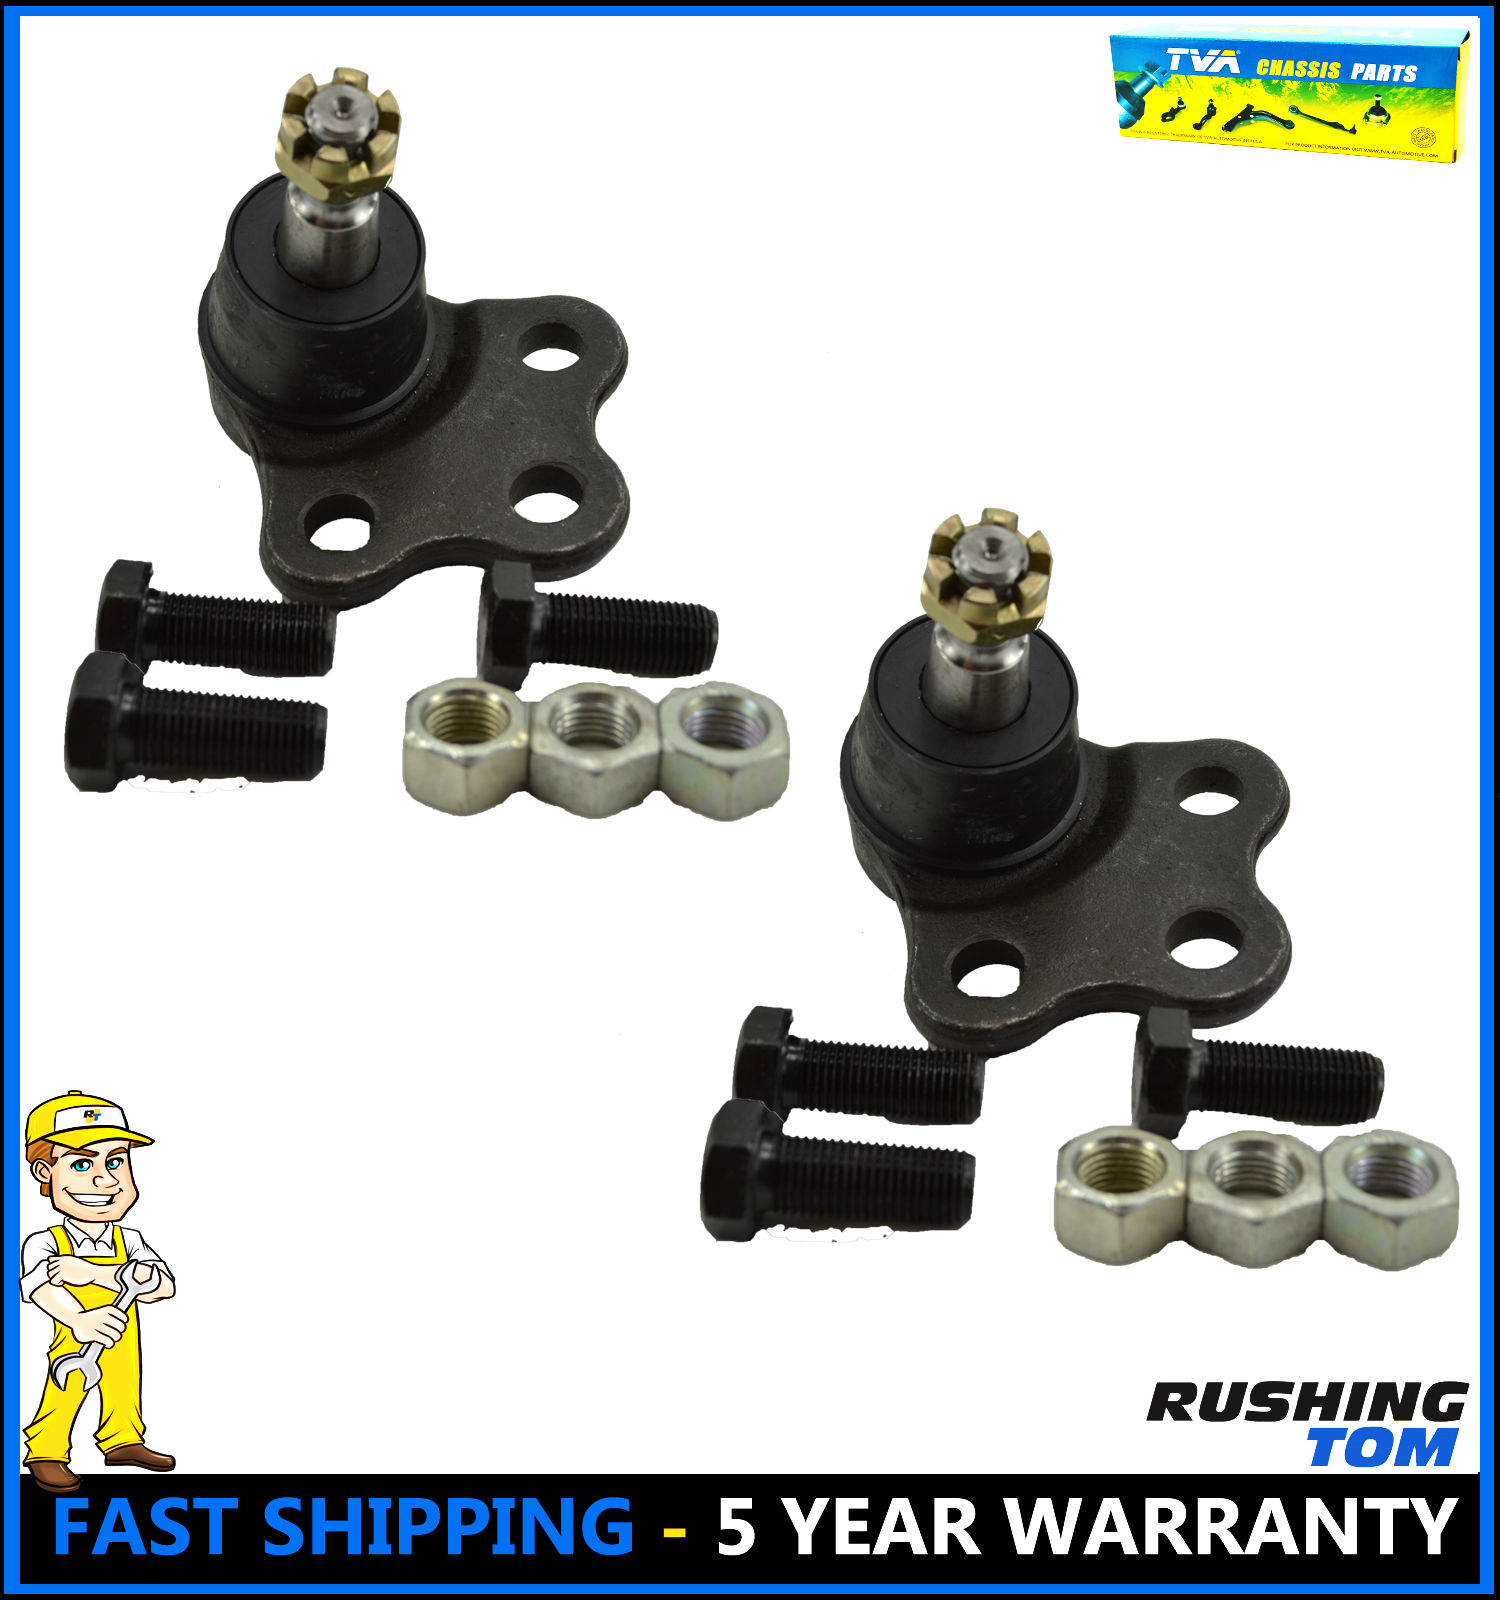 2 Front Lower Ball Joints for Pontiac Torrent Saturn Vue Chevy Brand New